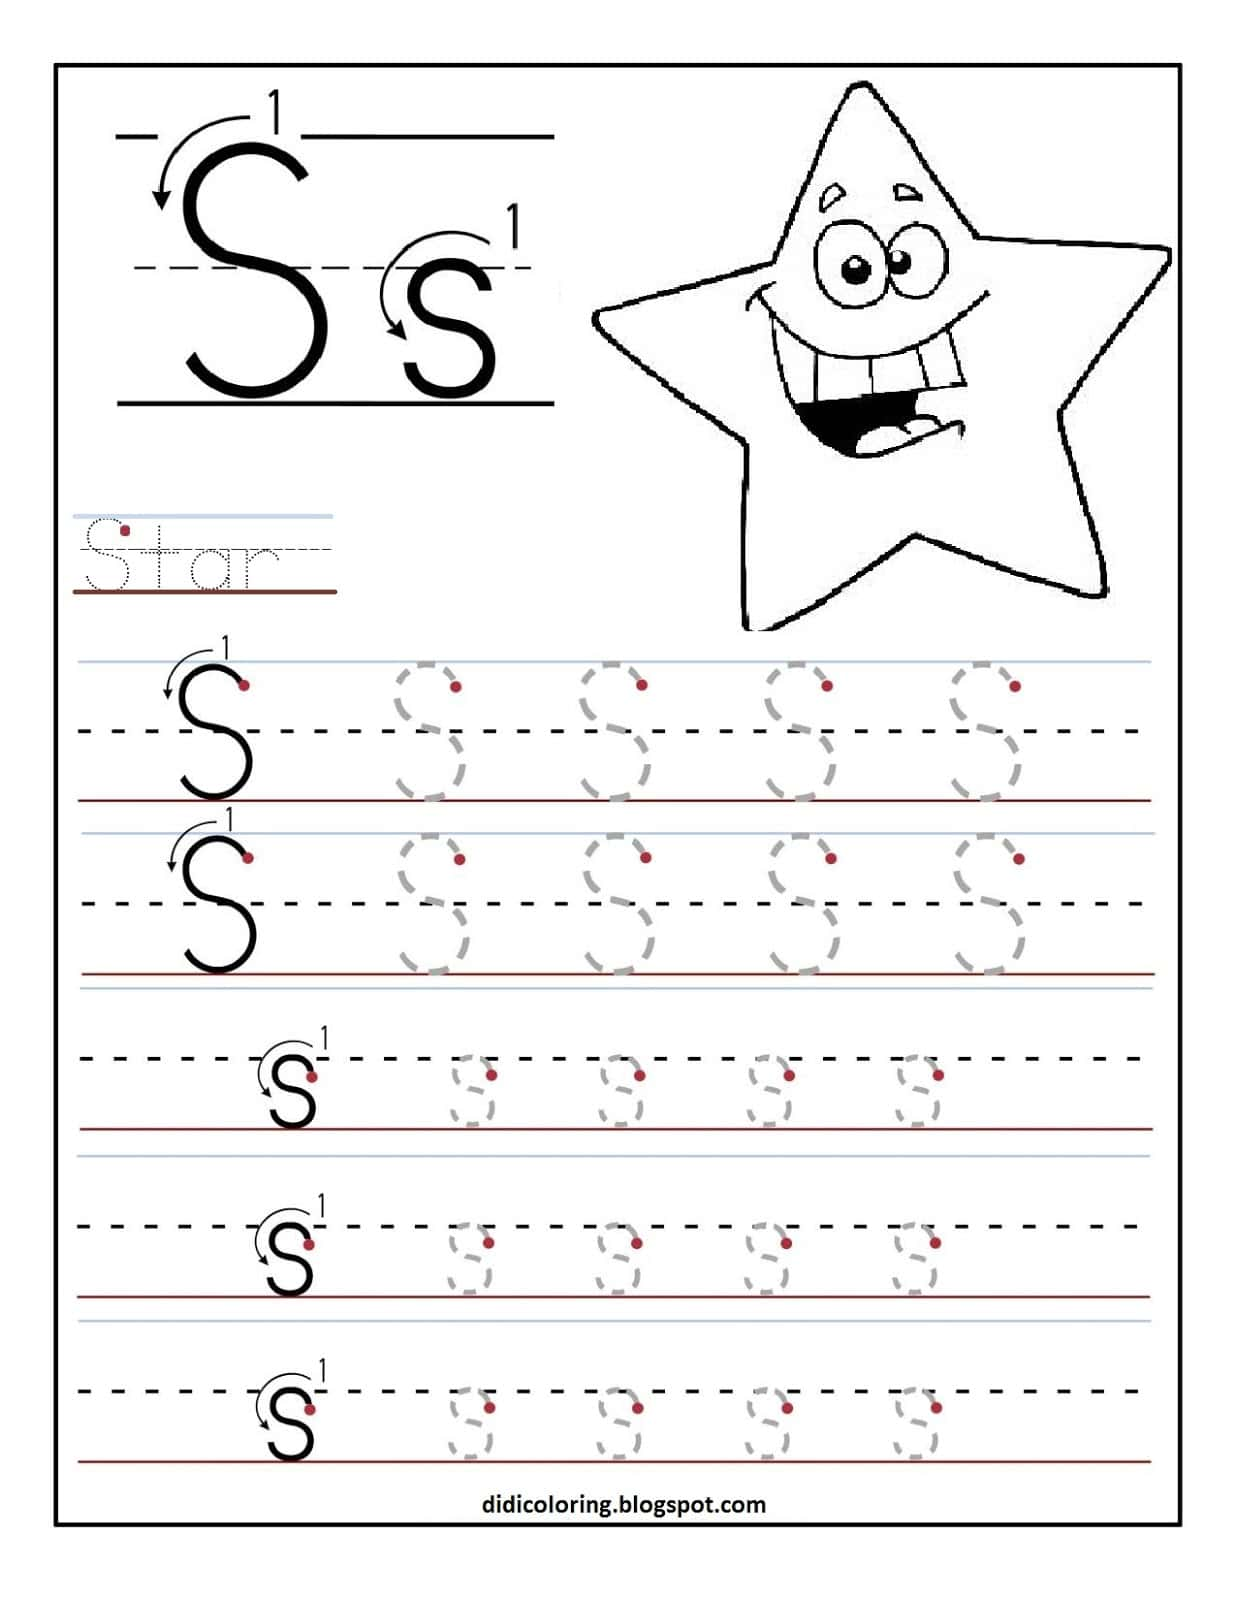 Printable Kindergarten Worksheets And English Handwriting Practice